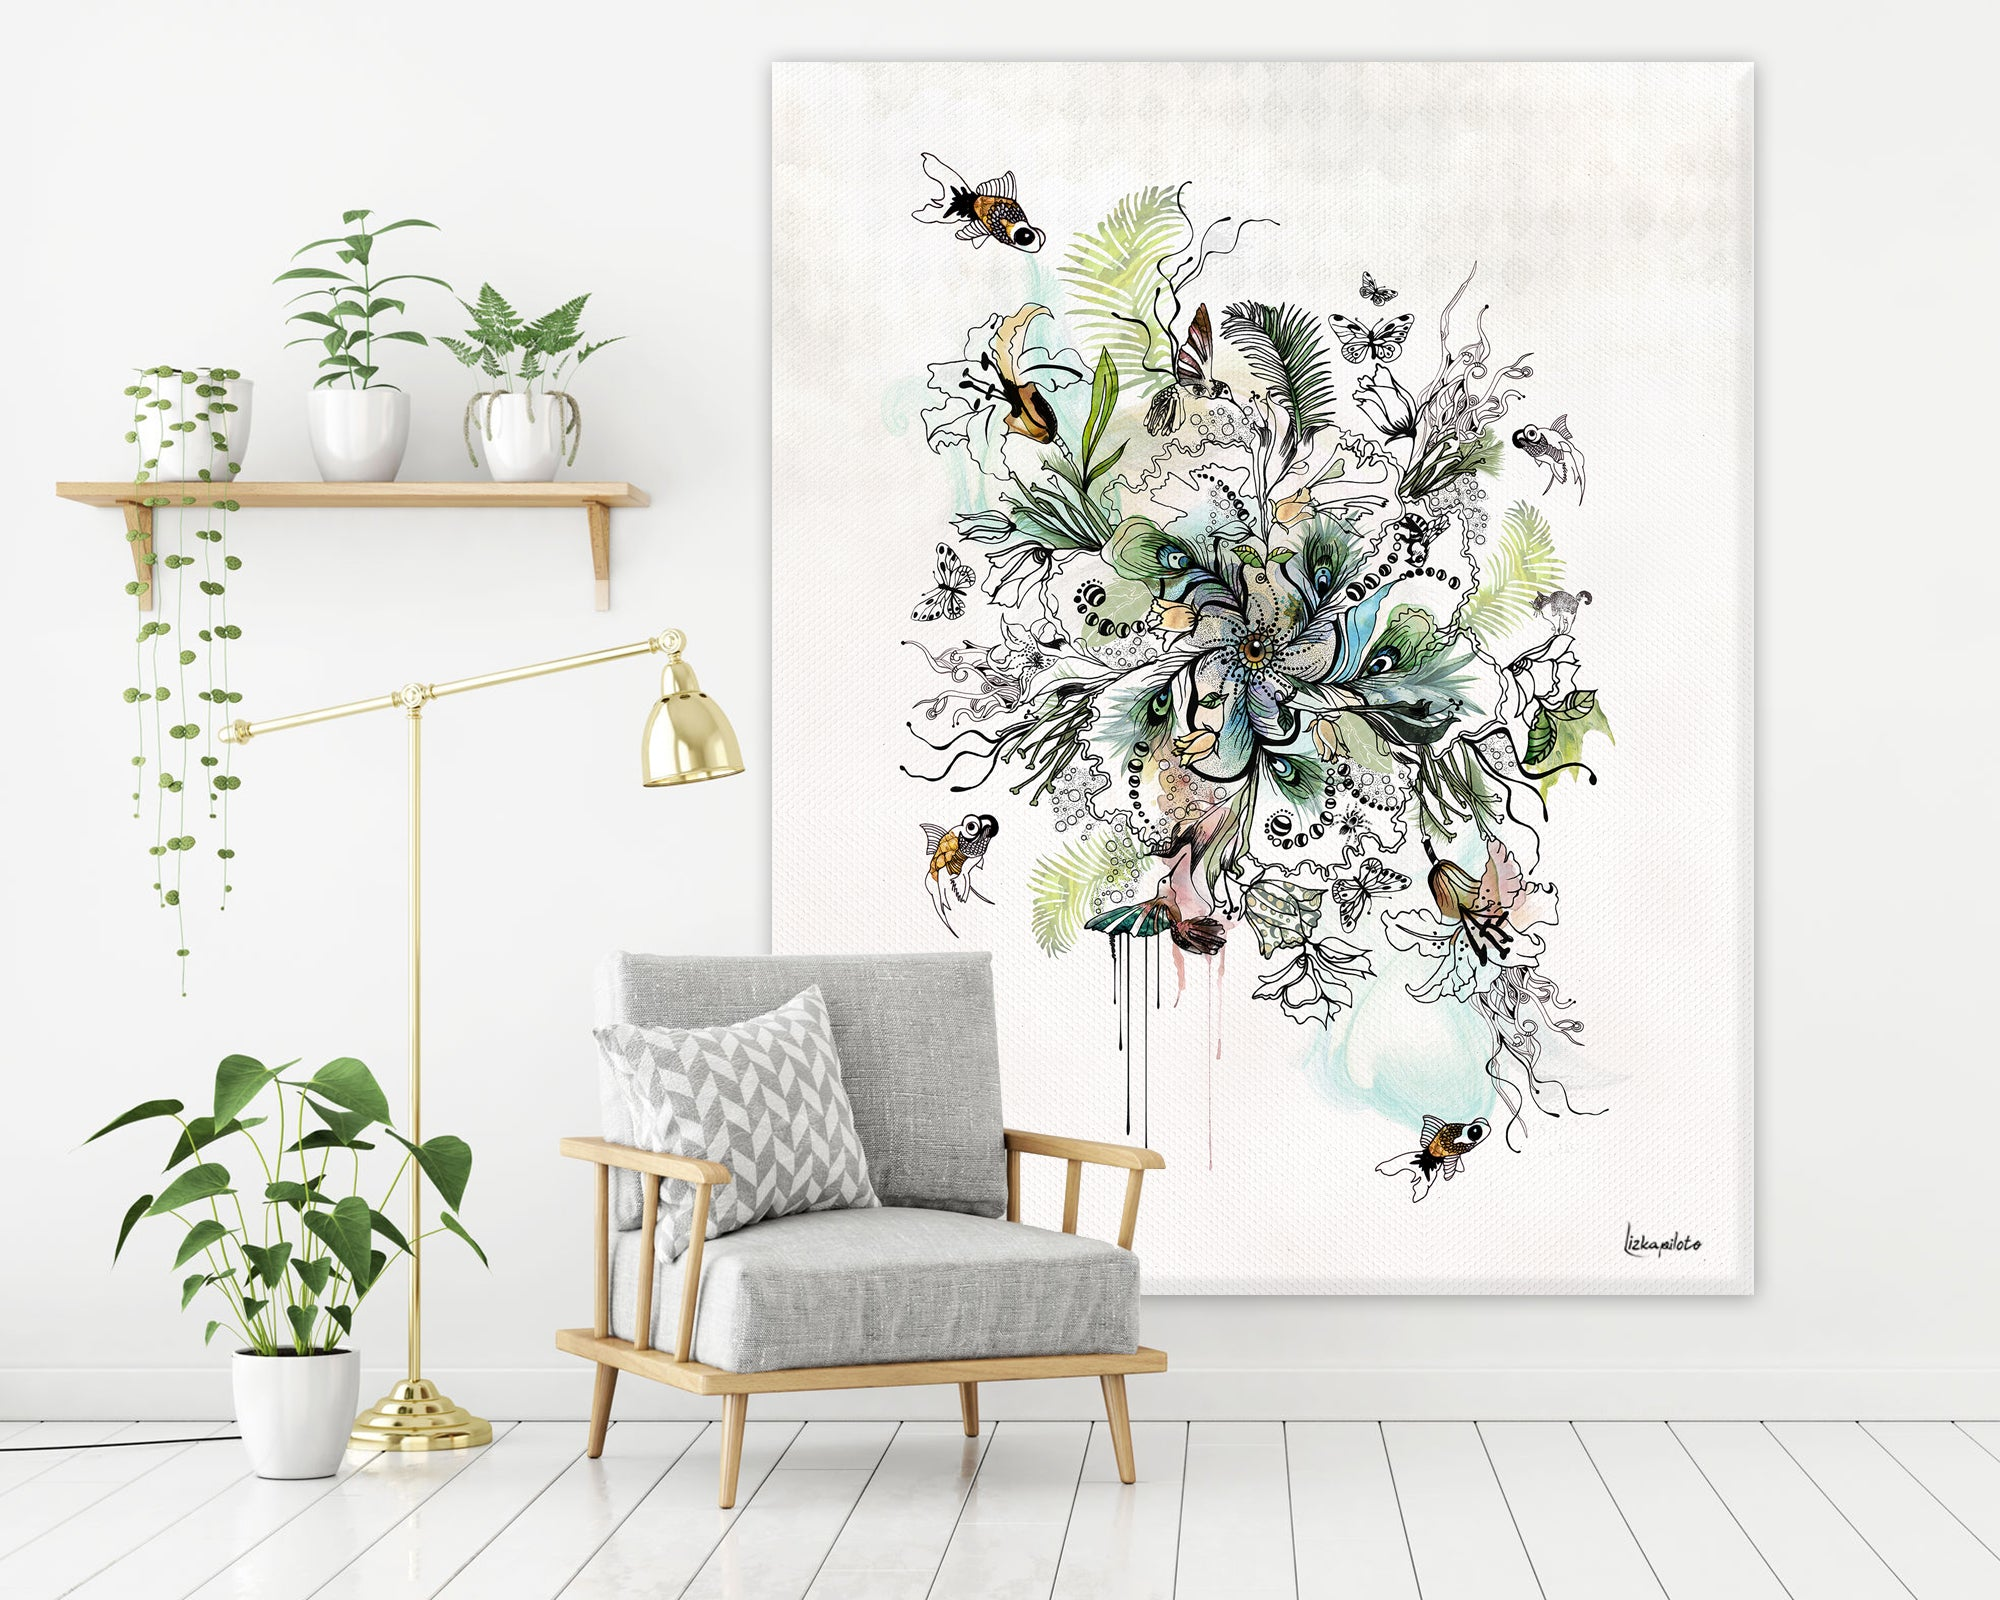 Modern mandala canvas art with turquoise and black colors, hanged on a white wall, above gray couch